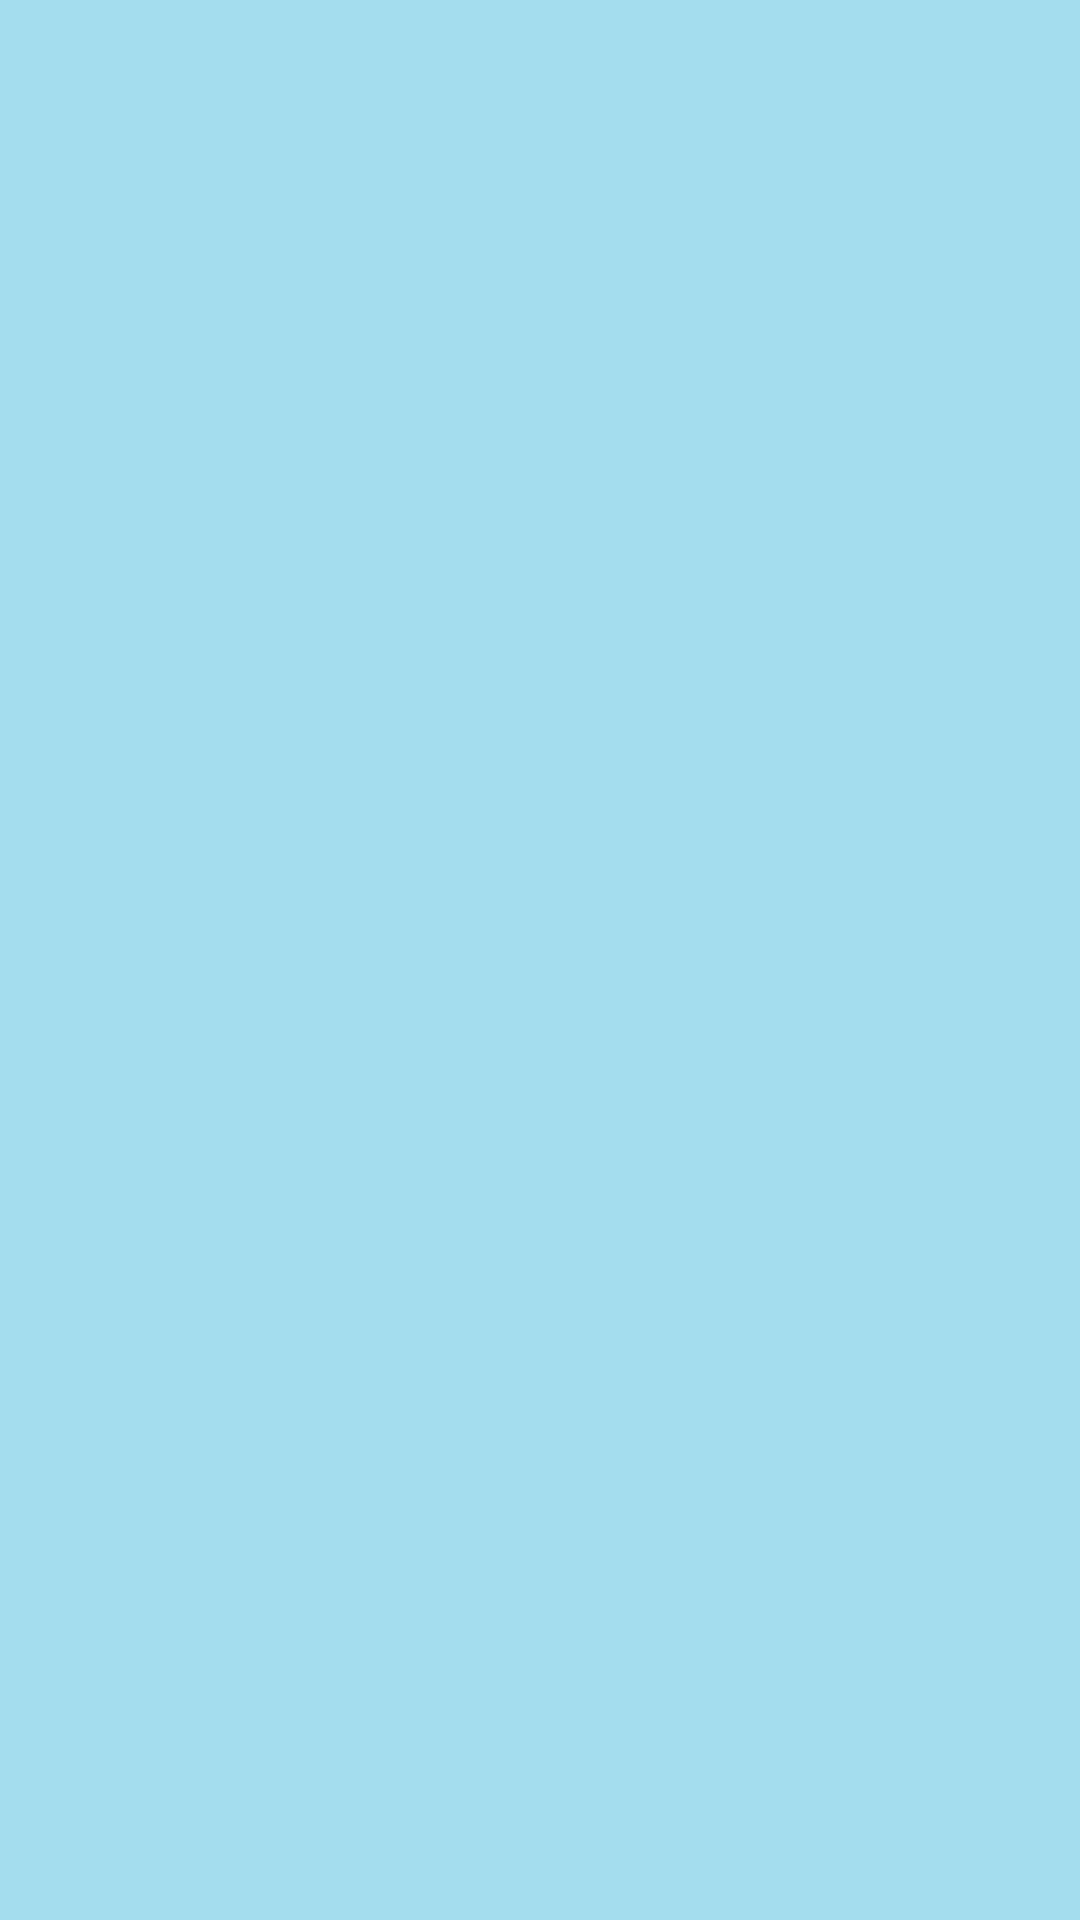 1080x1920 Non-photo Blue Solid Color Background